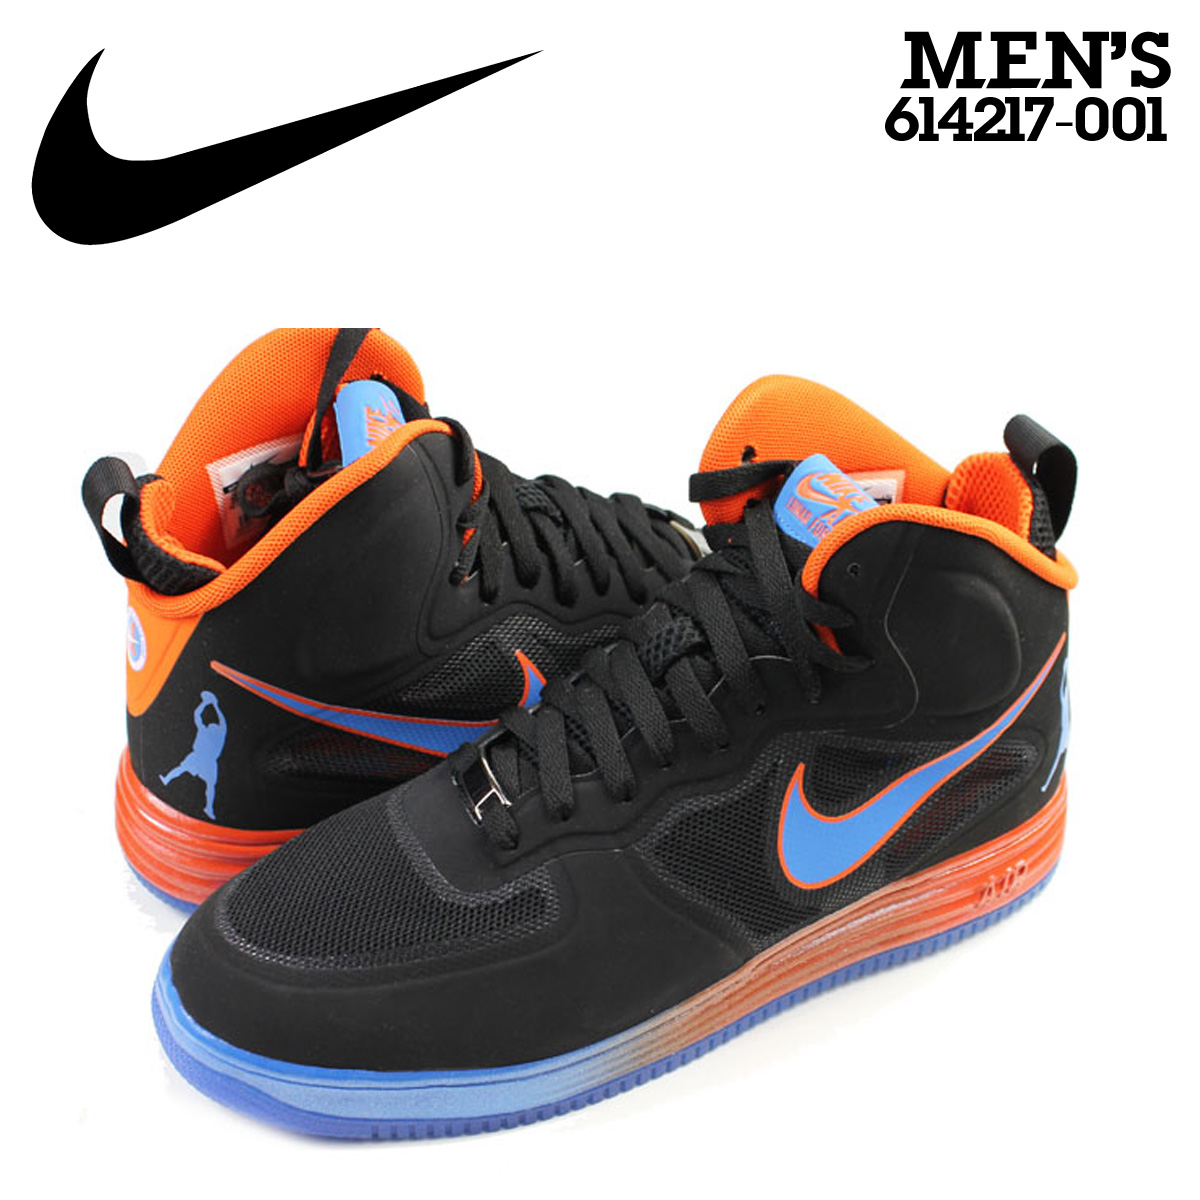 innovative design 3f3c7 572d6 Nike NIKE air force sneakers LUNAR FORCE1 MID FUSE QS